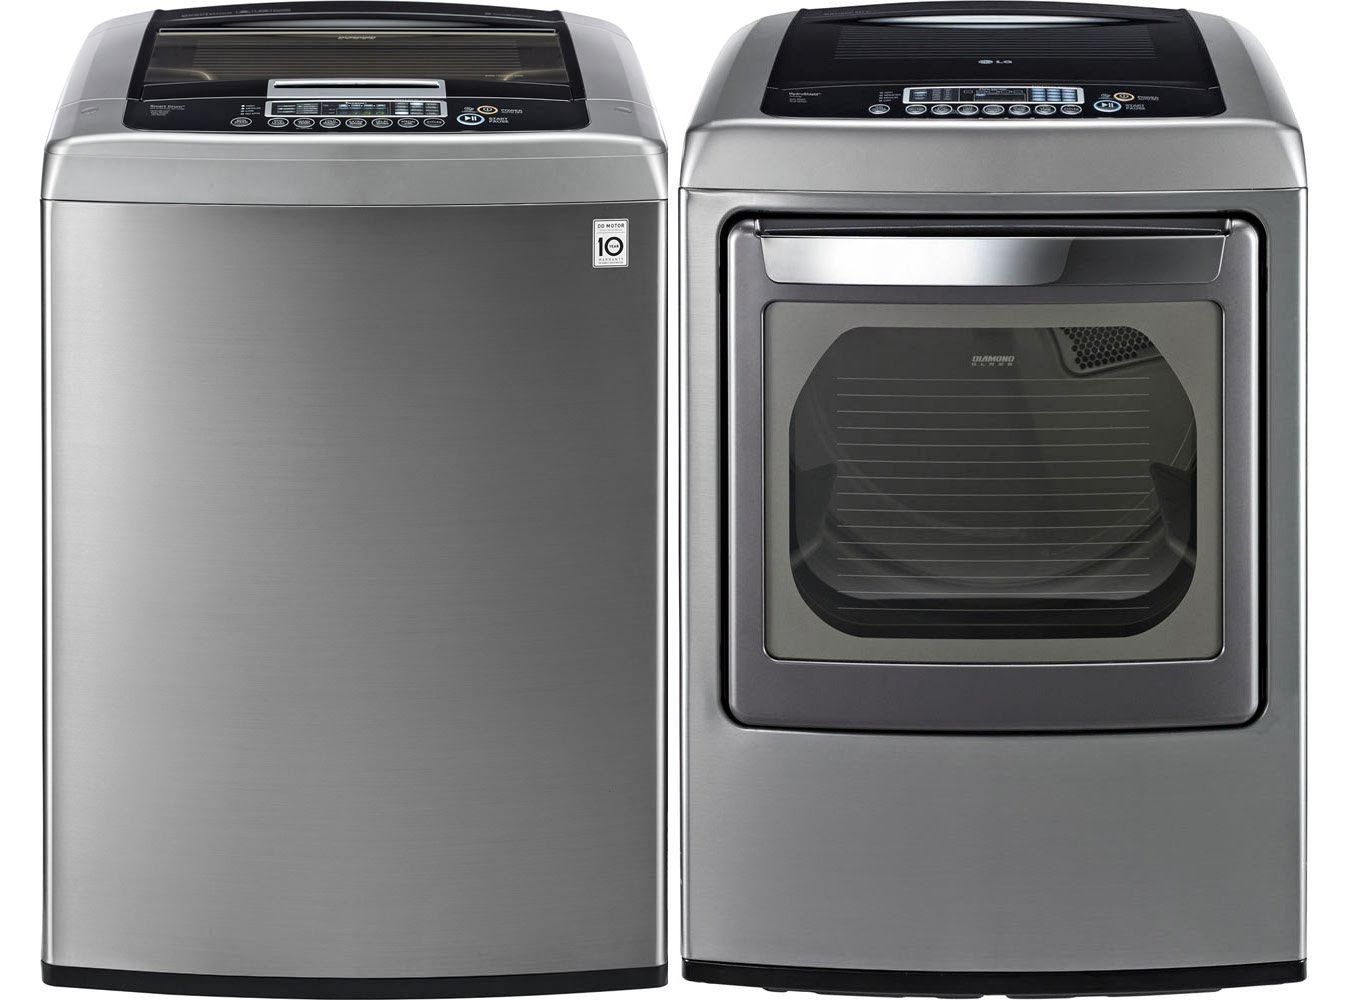 The best top load washer and dryer combo 2015 - Lg Graphite 4 5 Cf Front Control Top Load Washer And 7 3 Cf Steam Electric Dryer